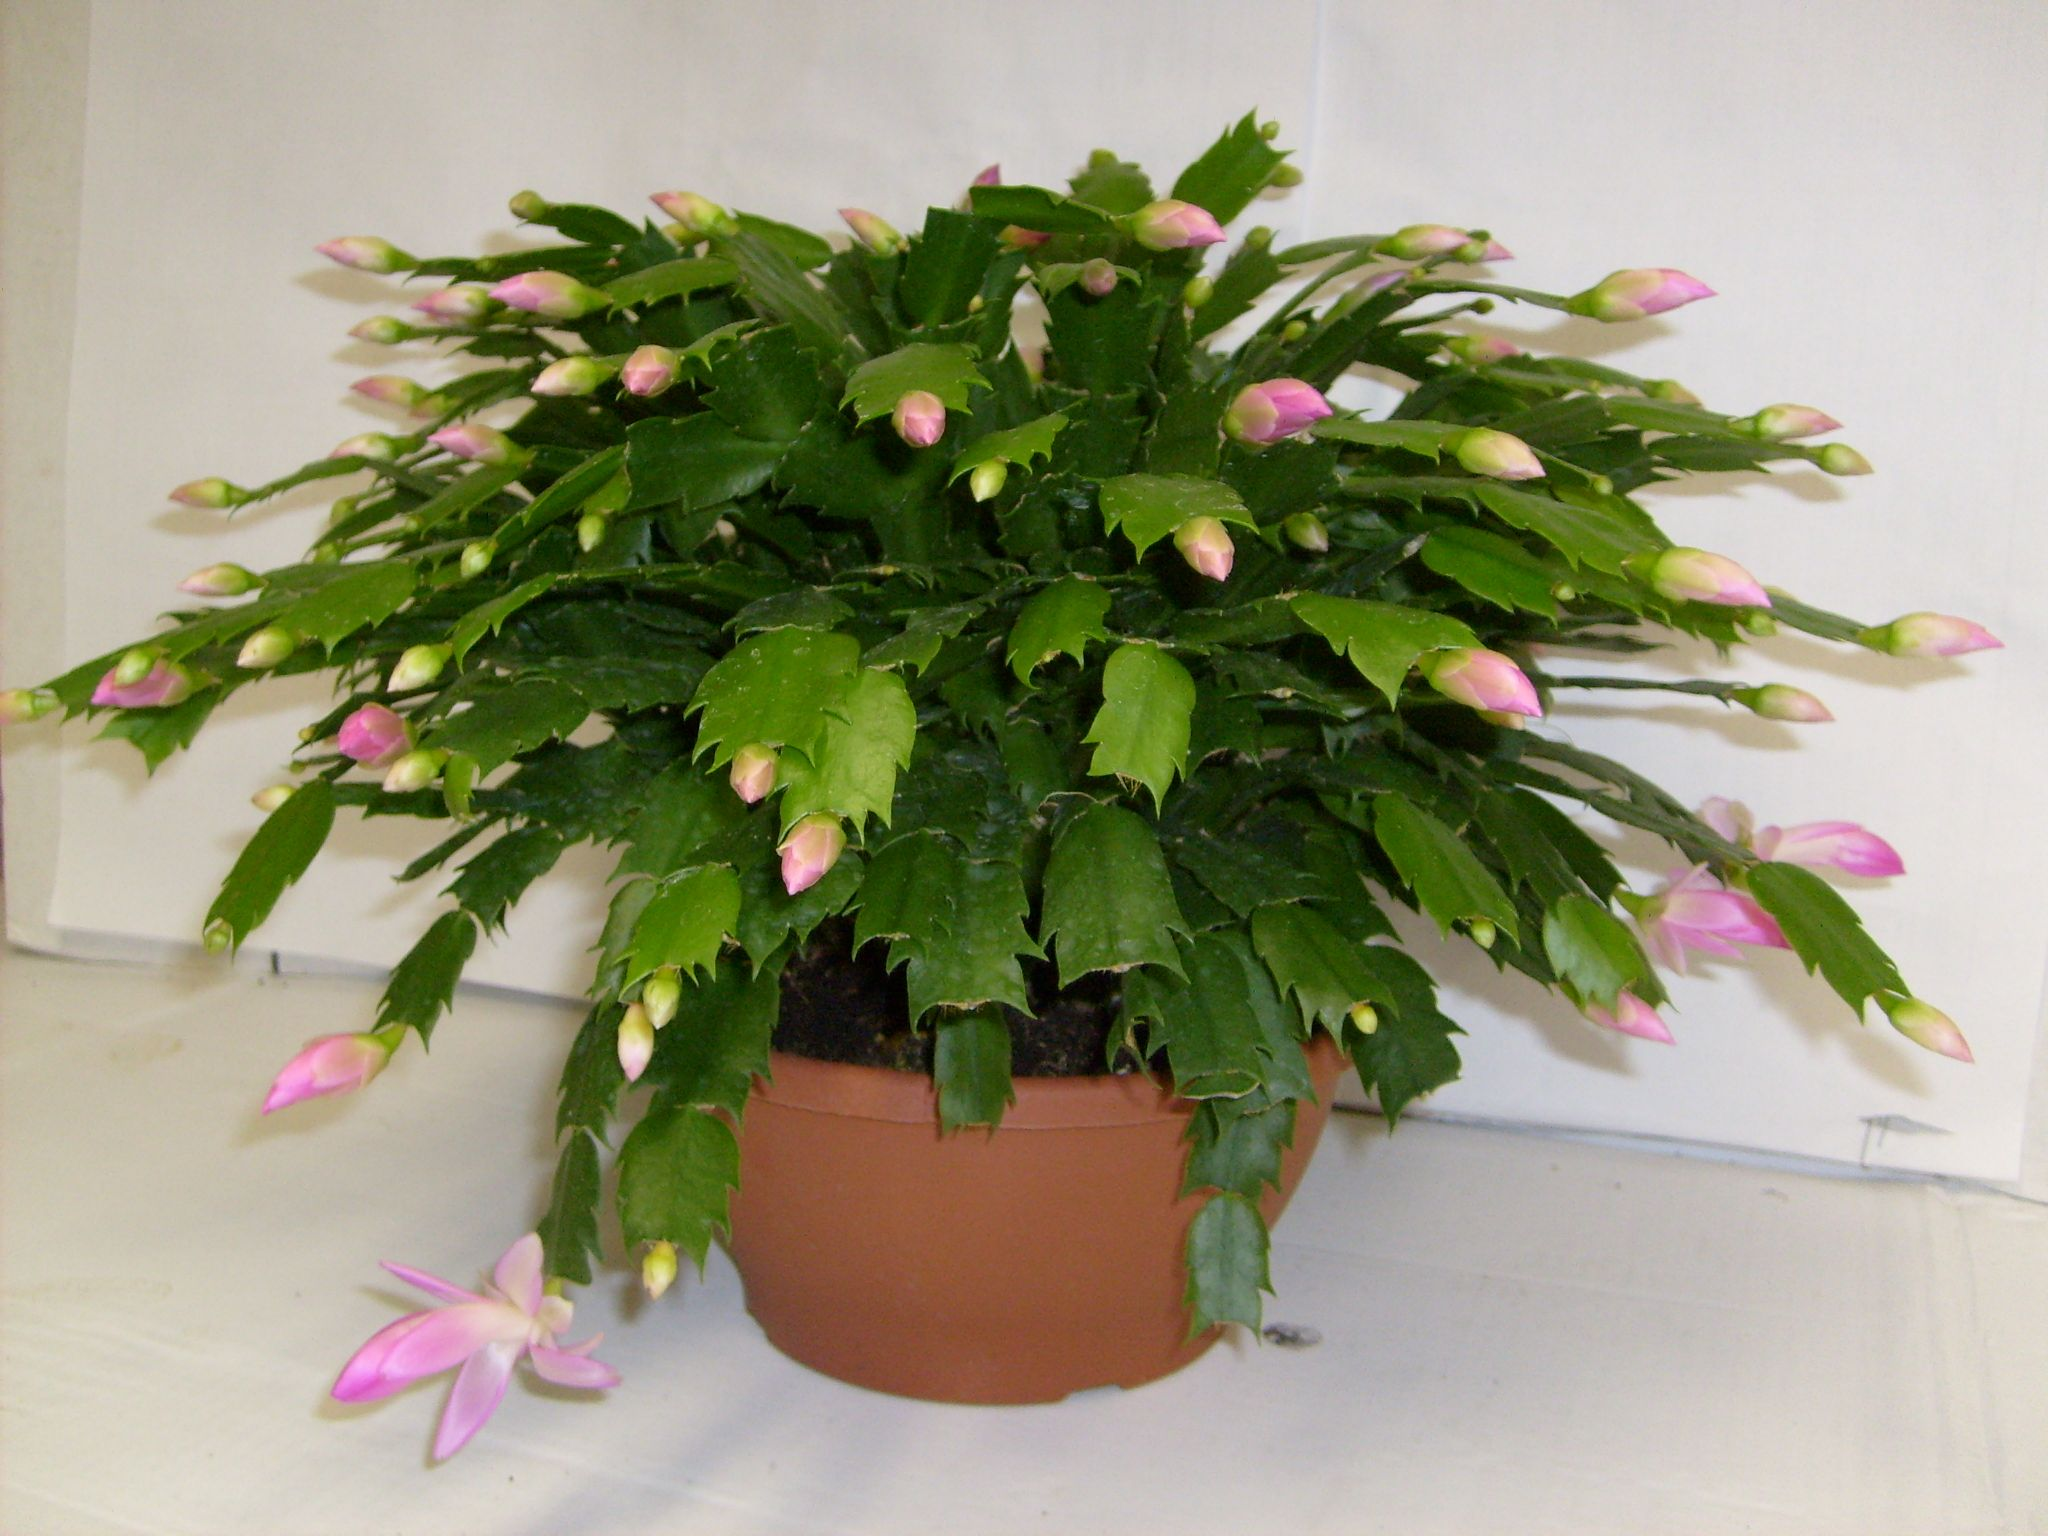 Take Stem Cuttings From Your Christmas Cactus Plant Now And Have Cute New Plants To Give As Presents